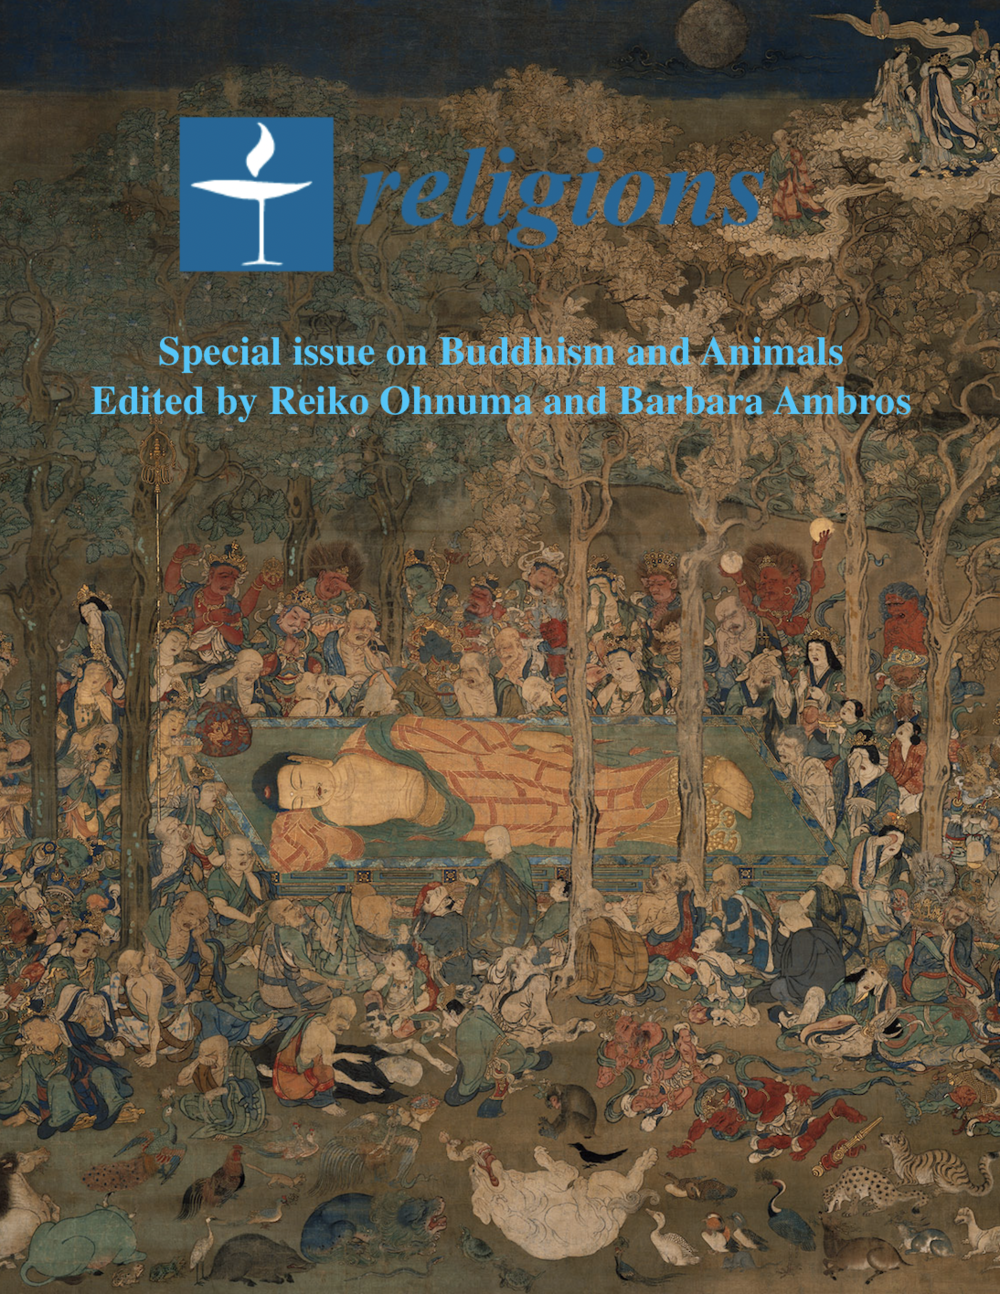 religion and animals cover.png